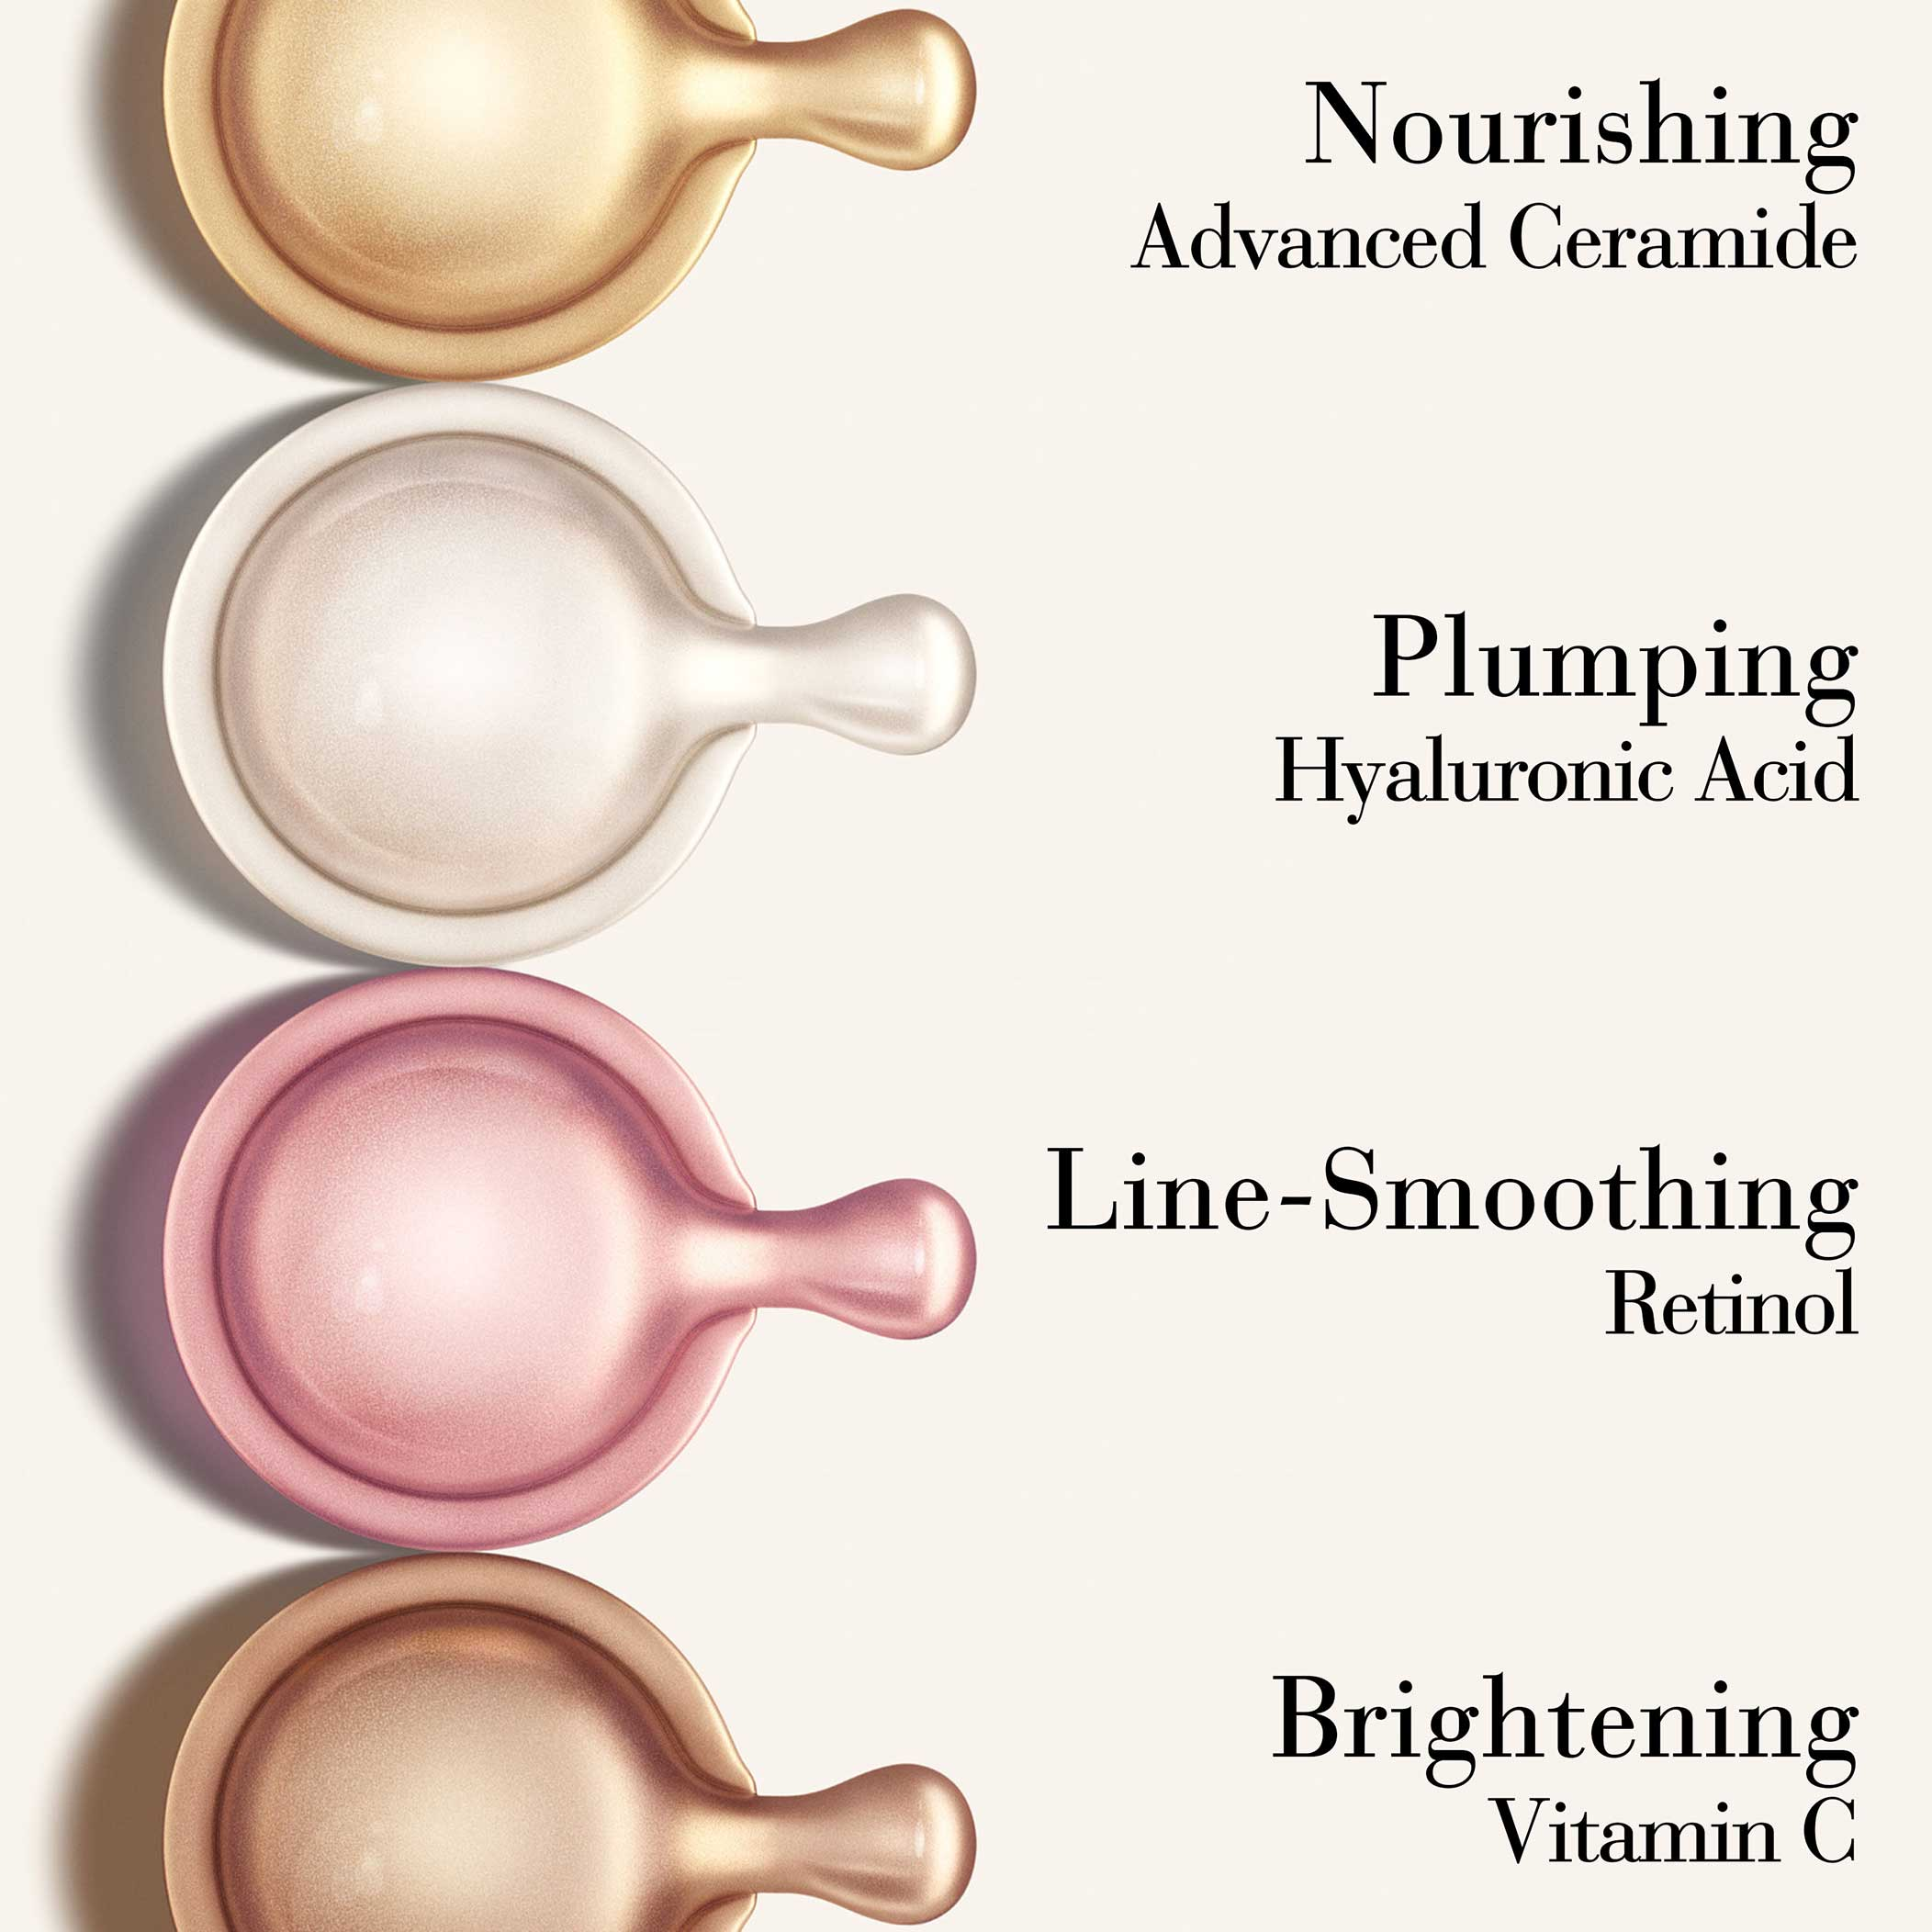 Advanced Ceramide Nourishes, Hyaluronic Acid Plumps, Retinol smooths line, Vitamin C brightens